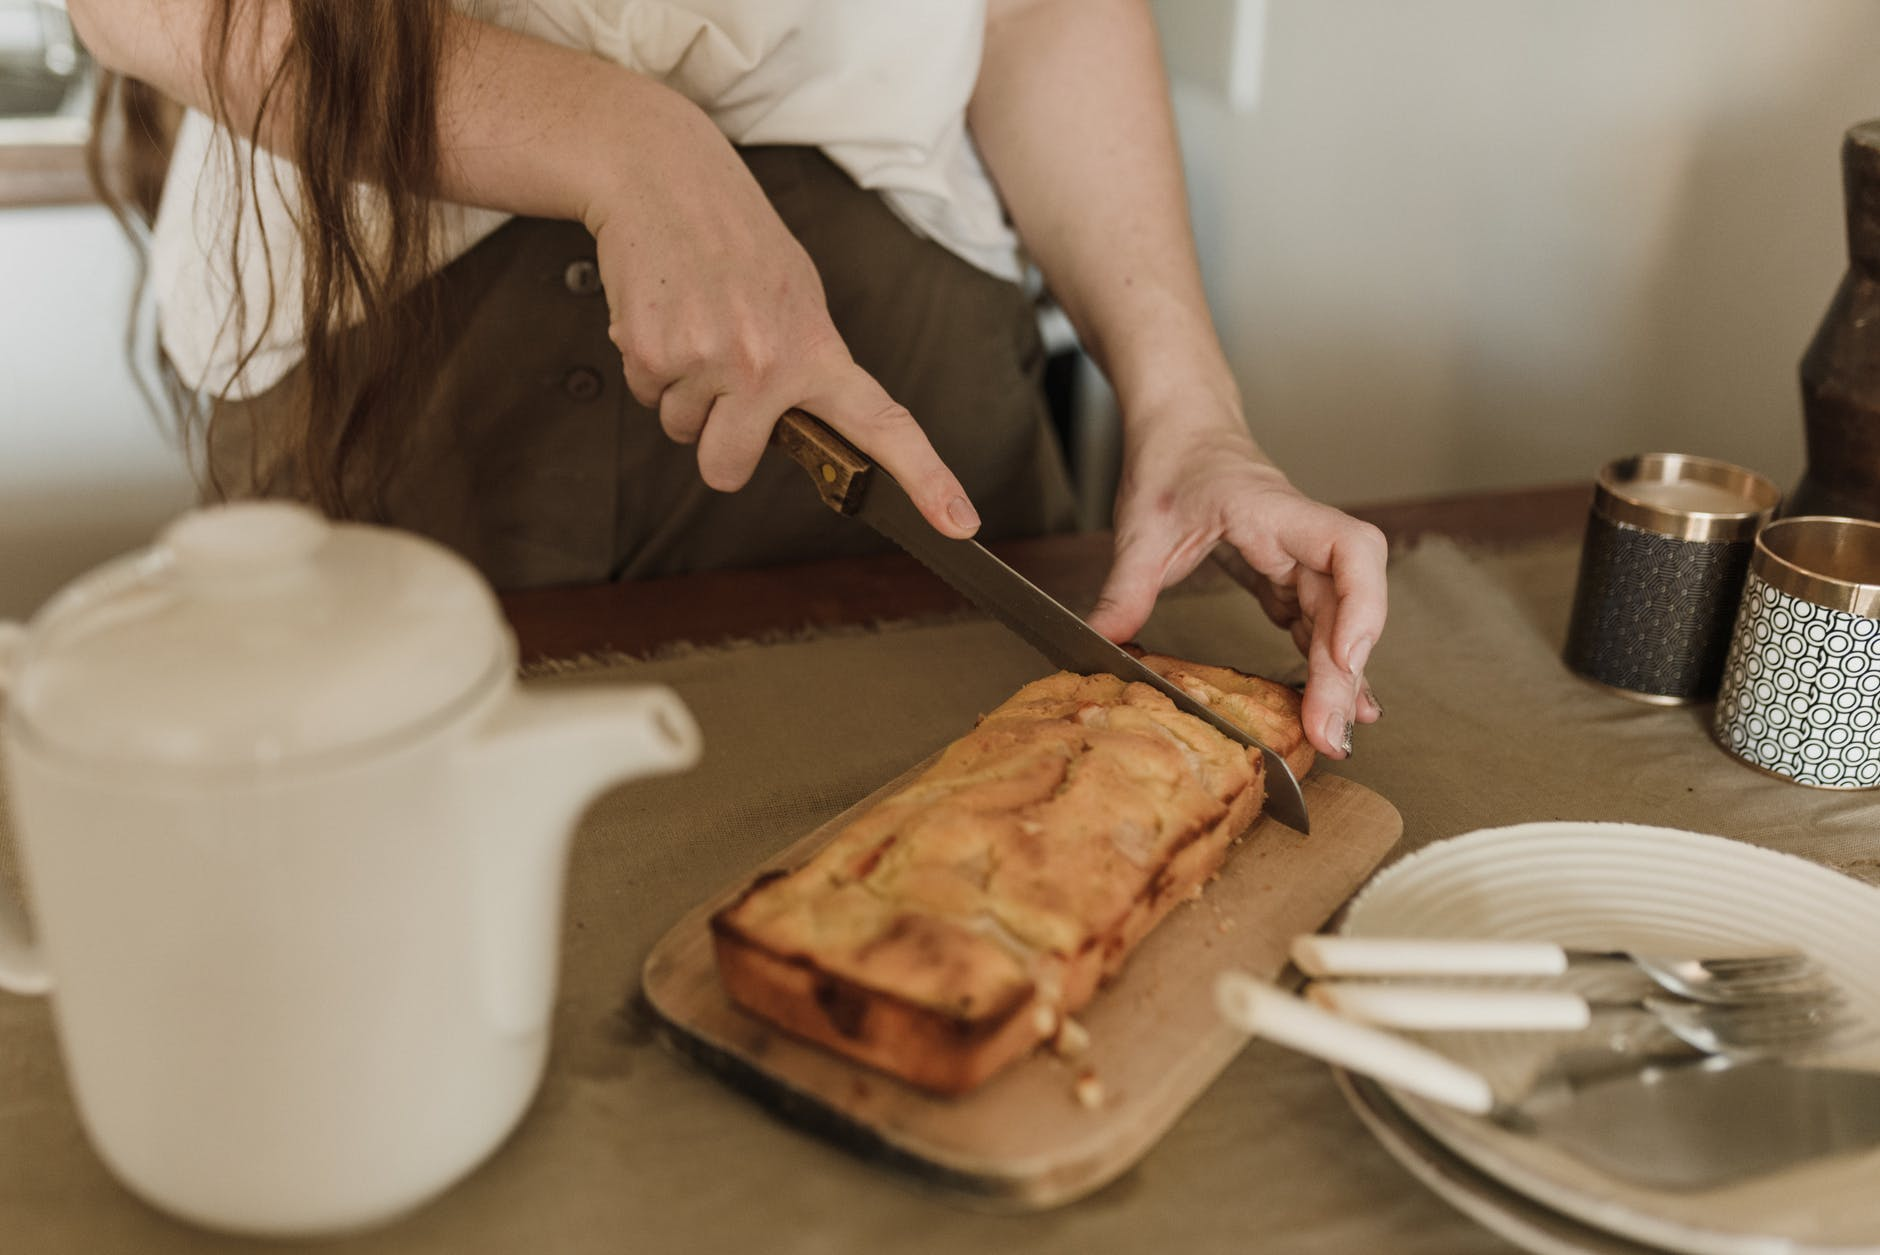 unrecognizable woman cutting freshly baked sweet bread in kitchen